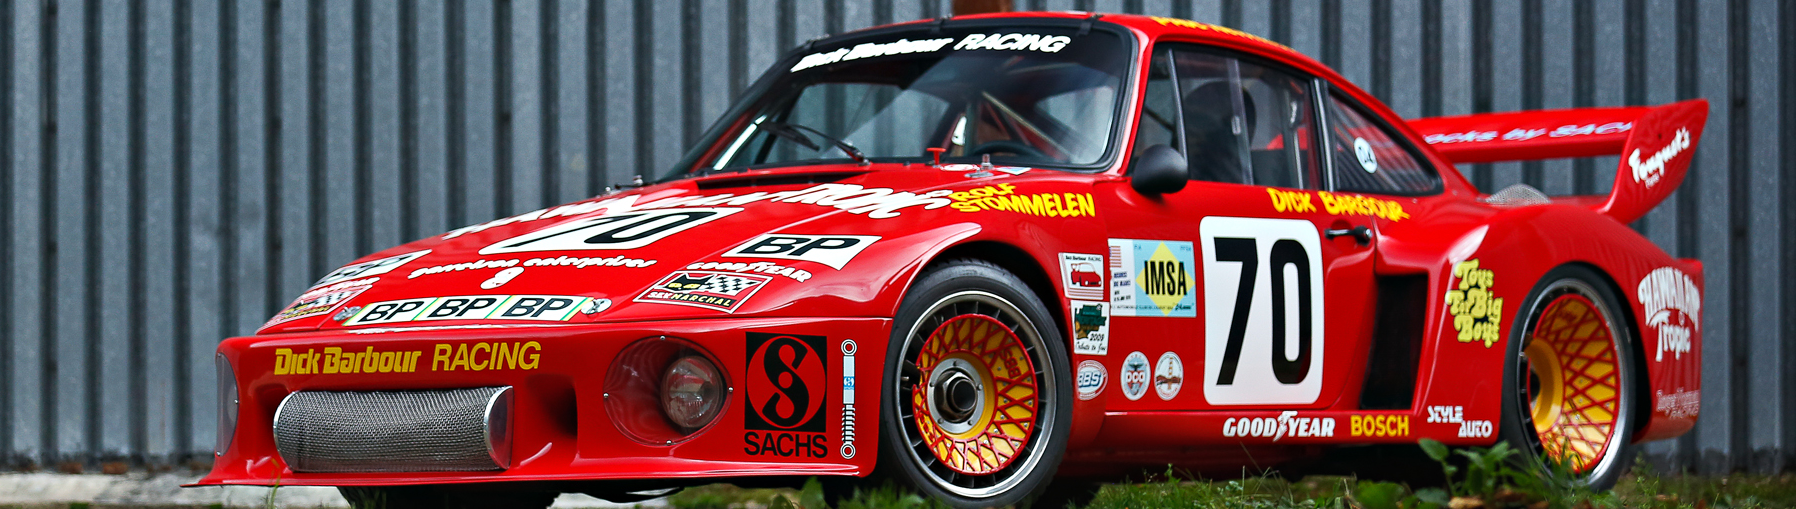 With 70,000 racing miles on the odometer, Newman's 1979 Porsche 935 is one of the most successful race cars of its era.